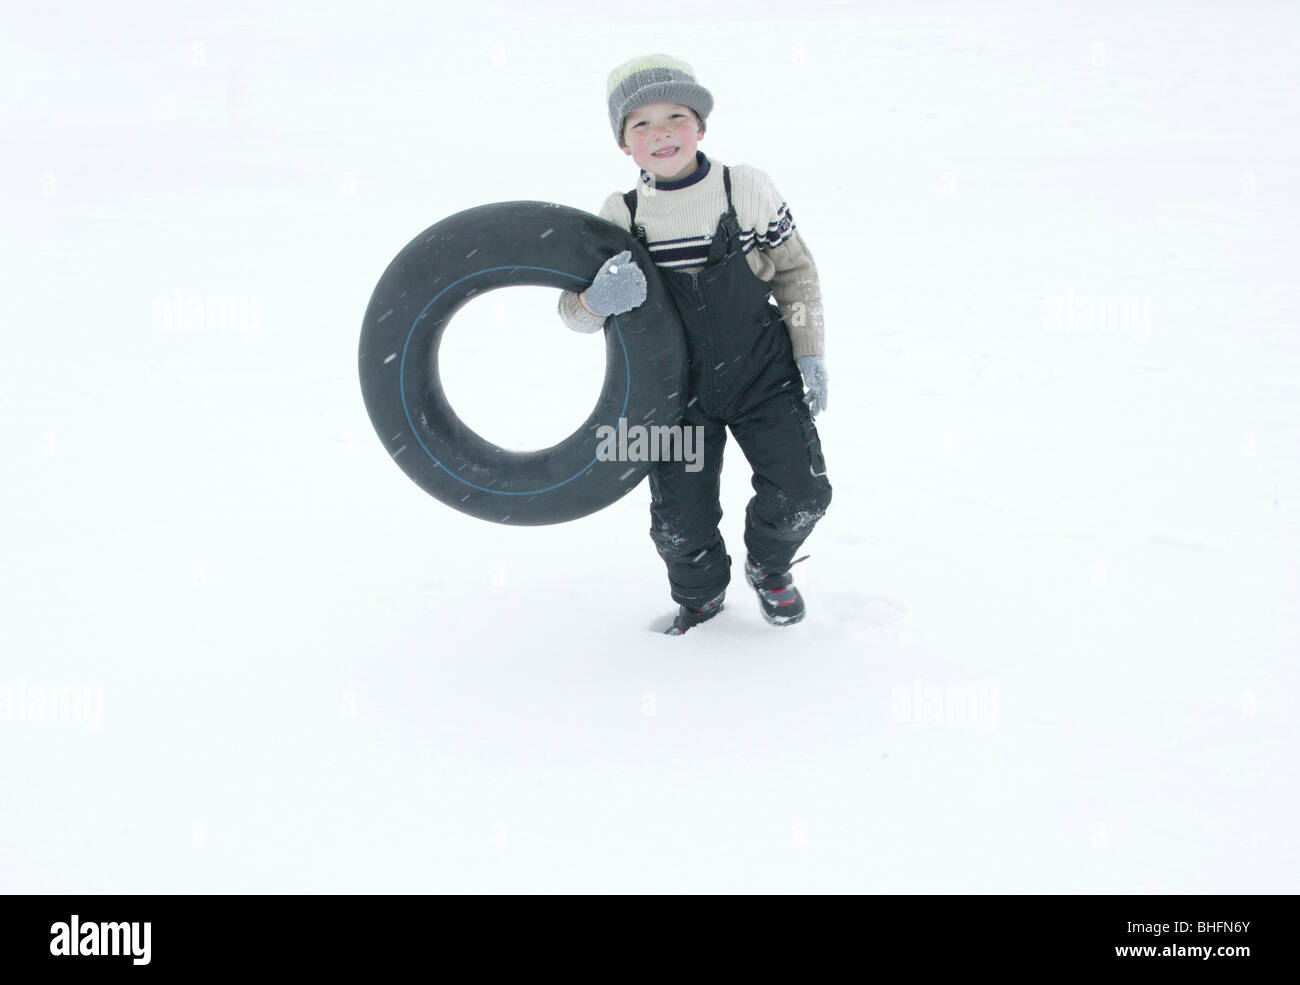 portrait of boy with inner tube in snow - Stock Image